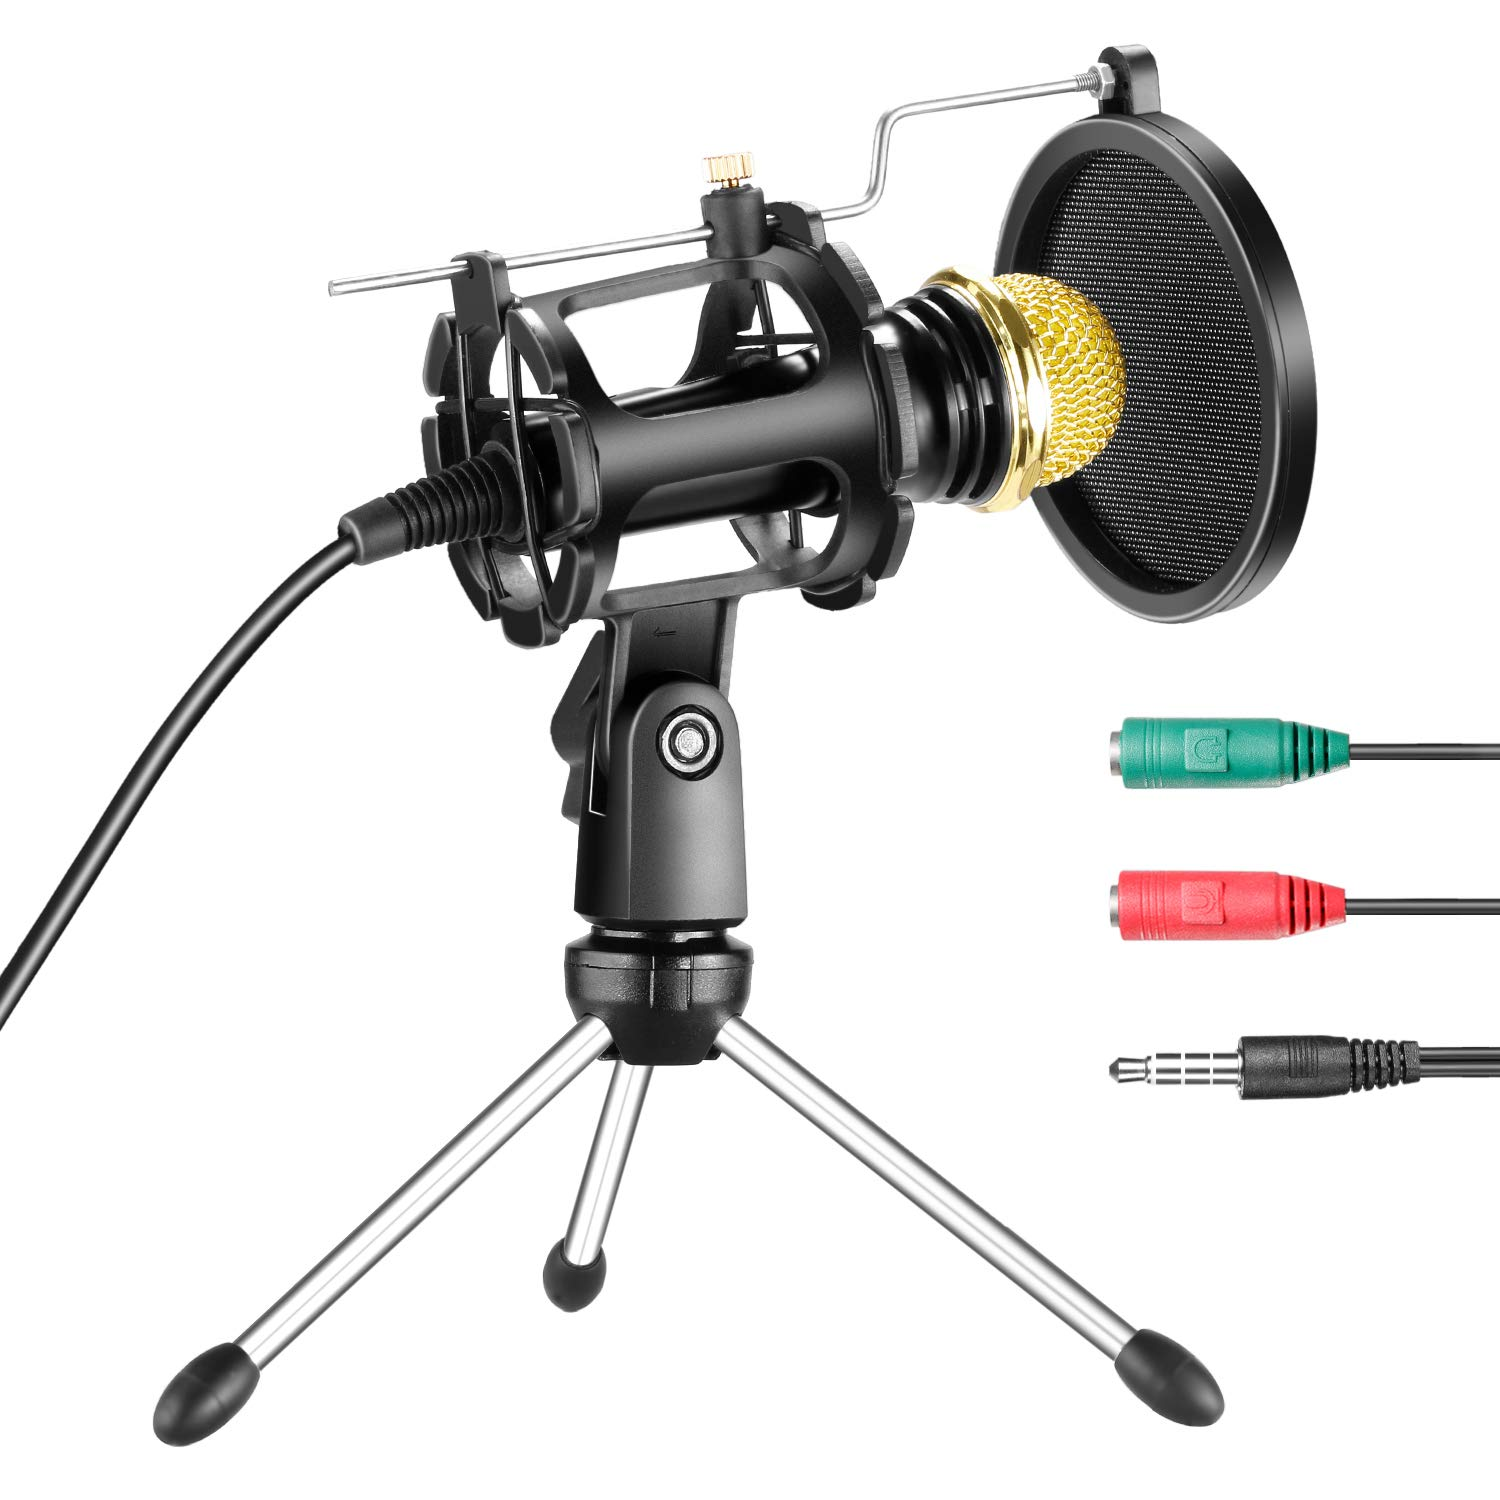 Neewer Professional Home Studio Condenser Microphone Plug and Play with Mini Desktop Mic Stand and Dual-layer Pop Filter for iPhone Android Smartphone PC Computer for Sound Recording Podcasting by Neewer